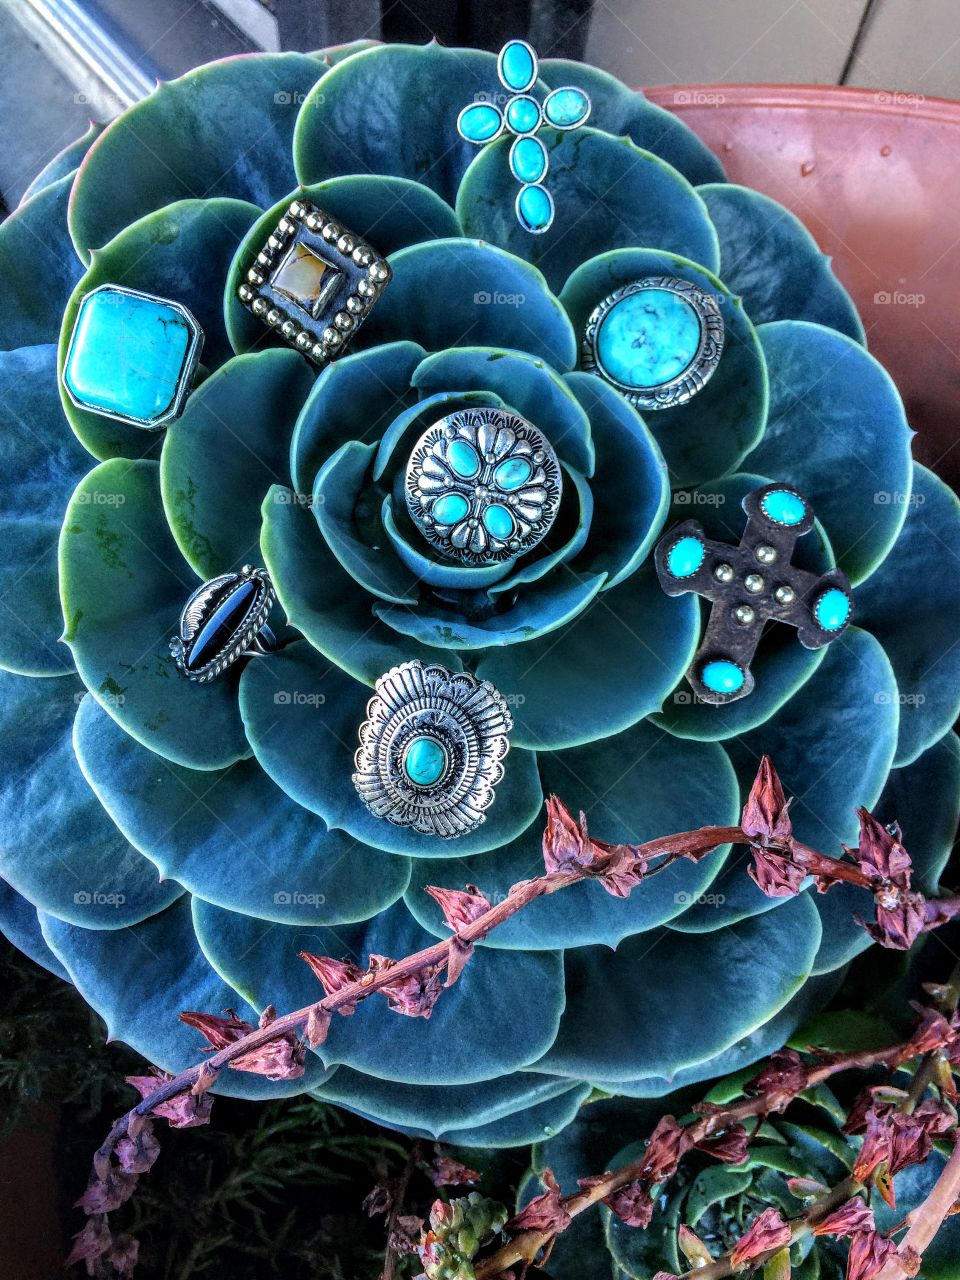 WHO DOESN'T LIVE CACTUS AND RINGS!?